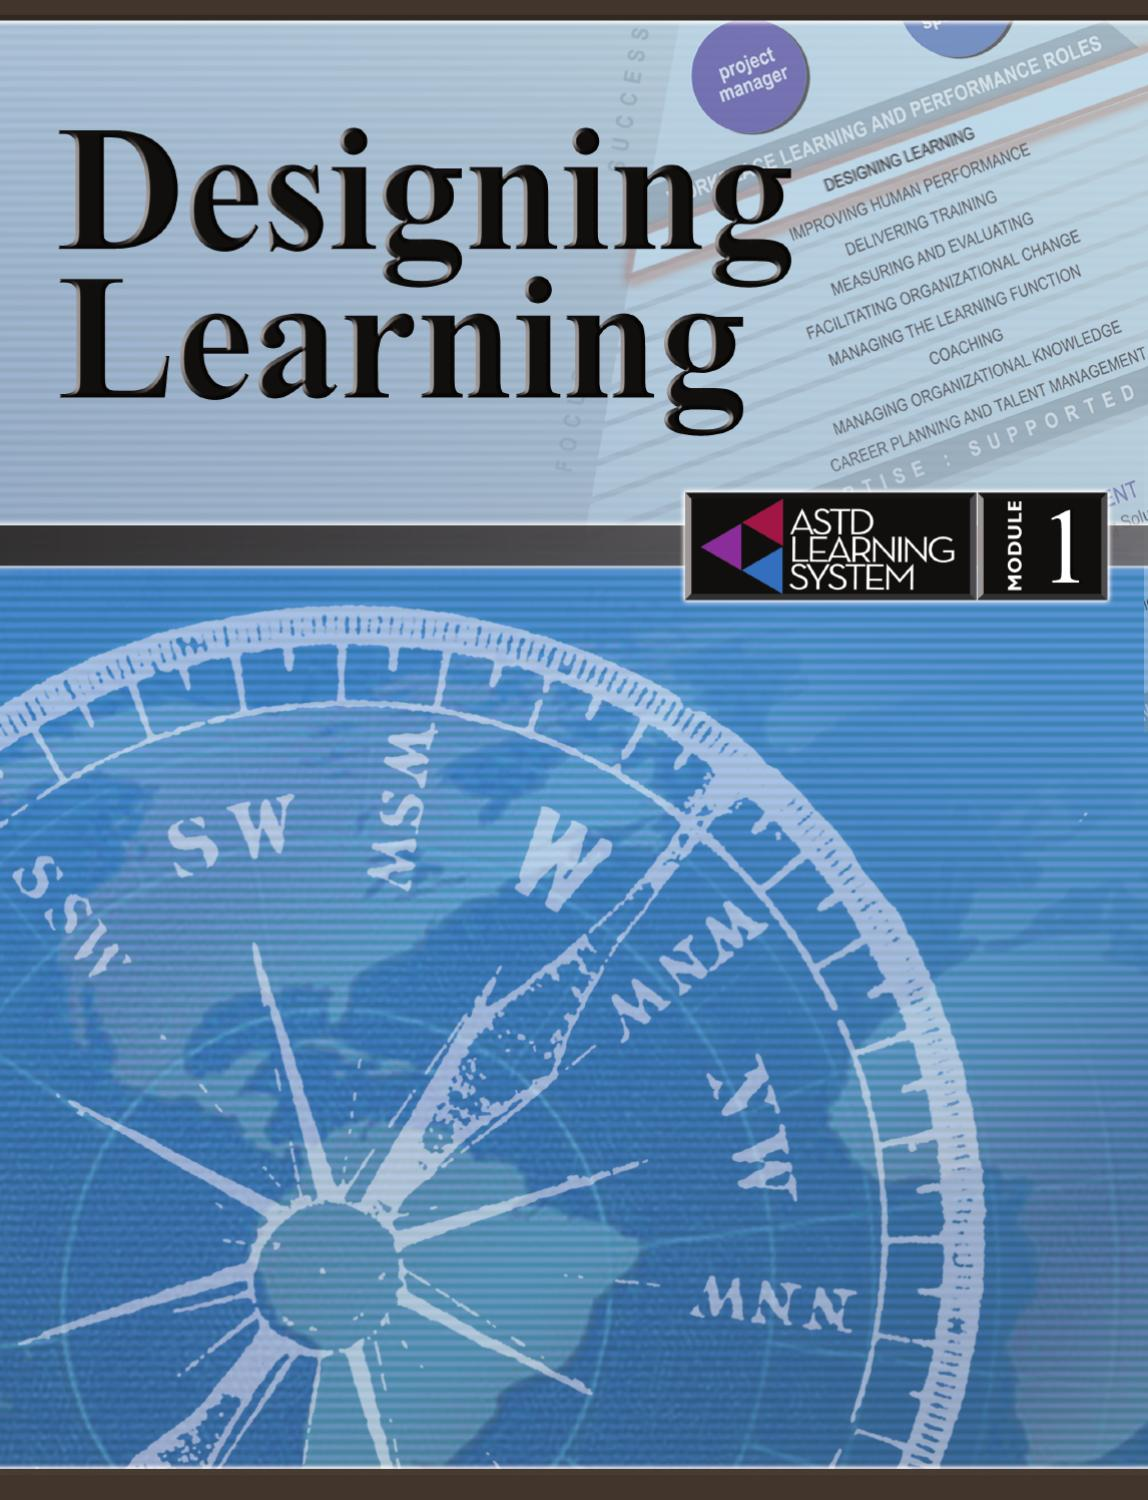 1_Designing+Learning by Theresa Haskins - issuu